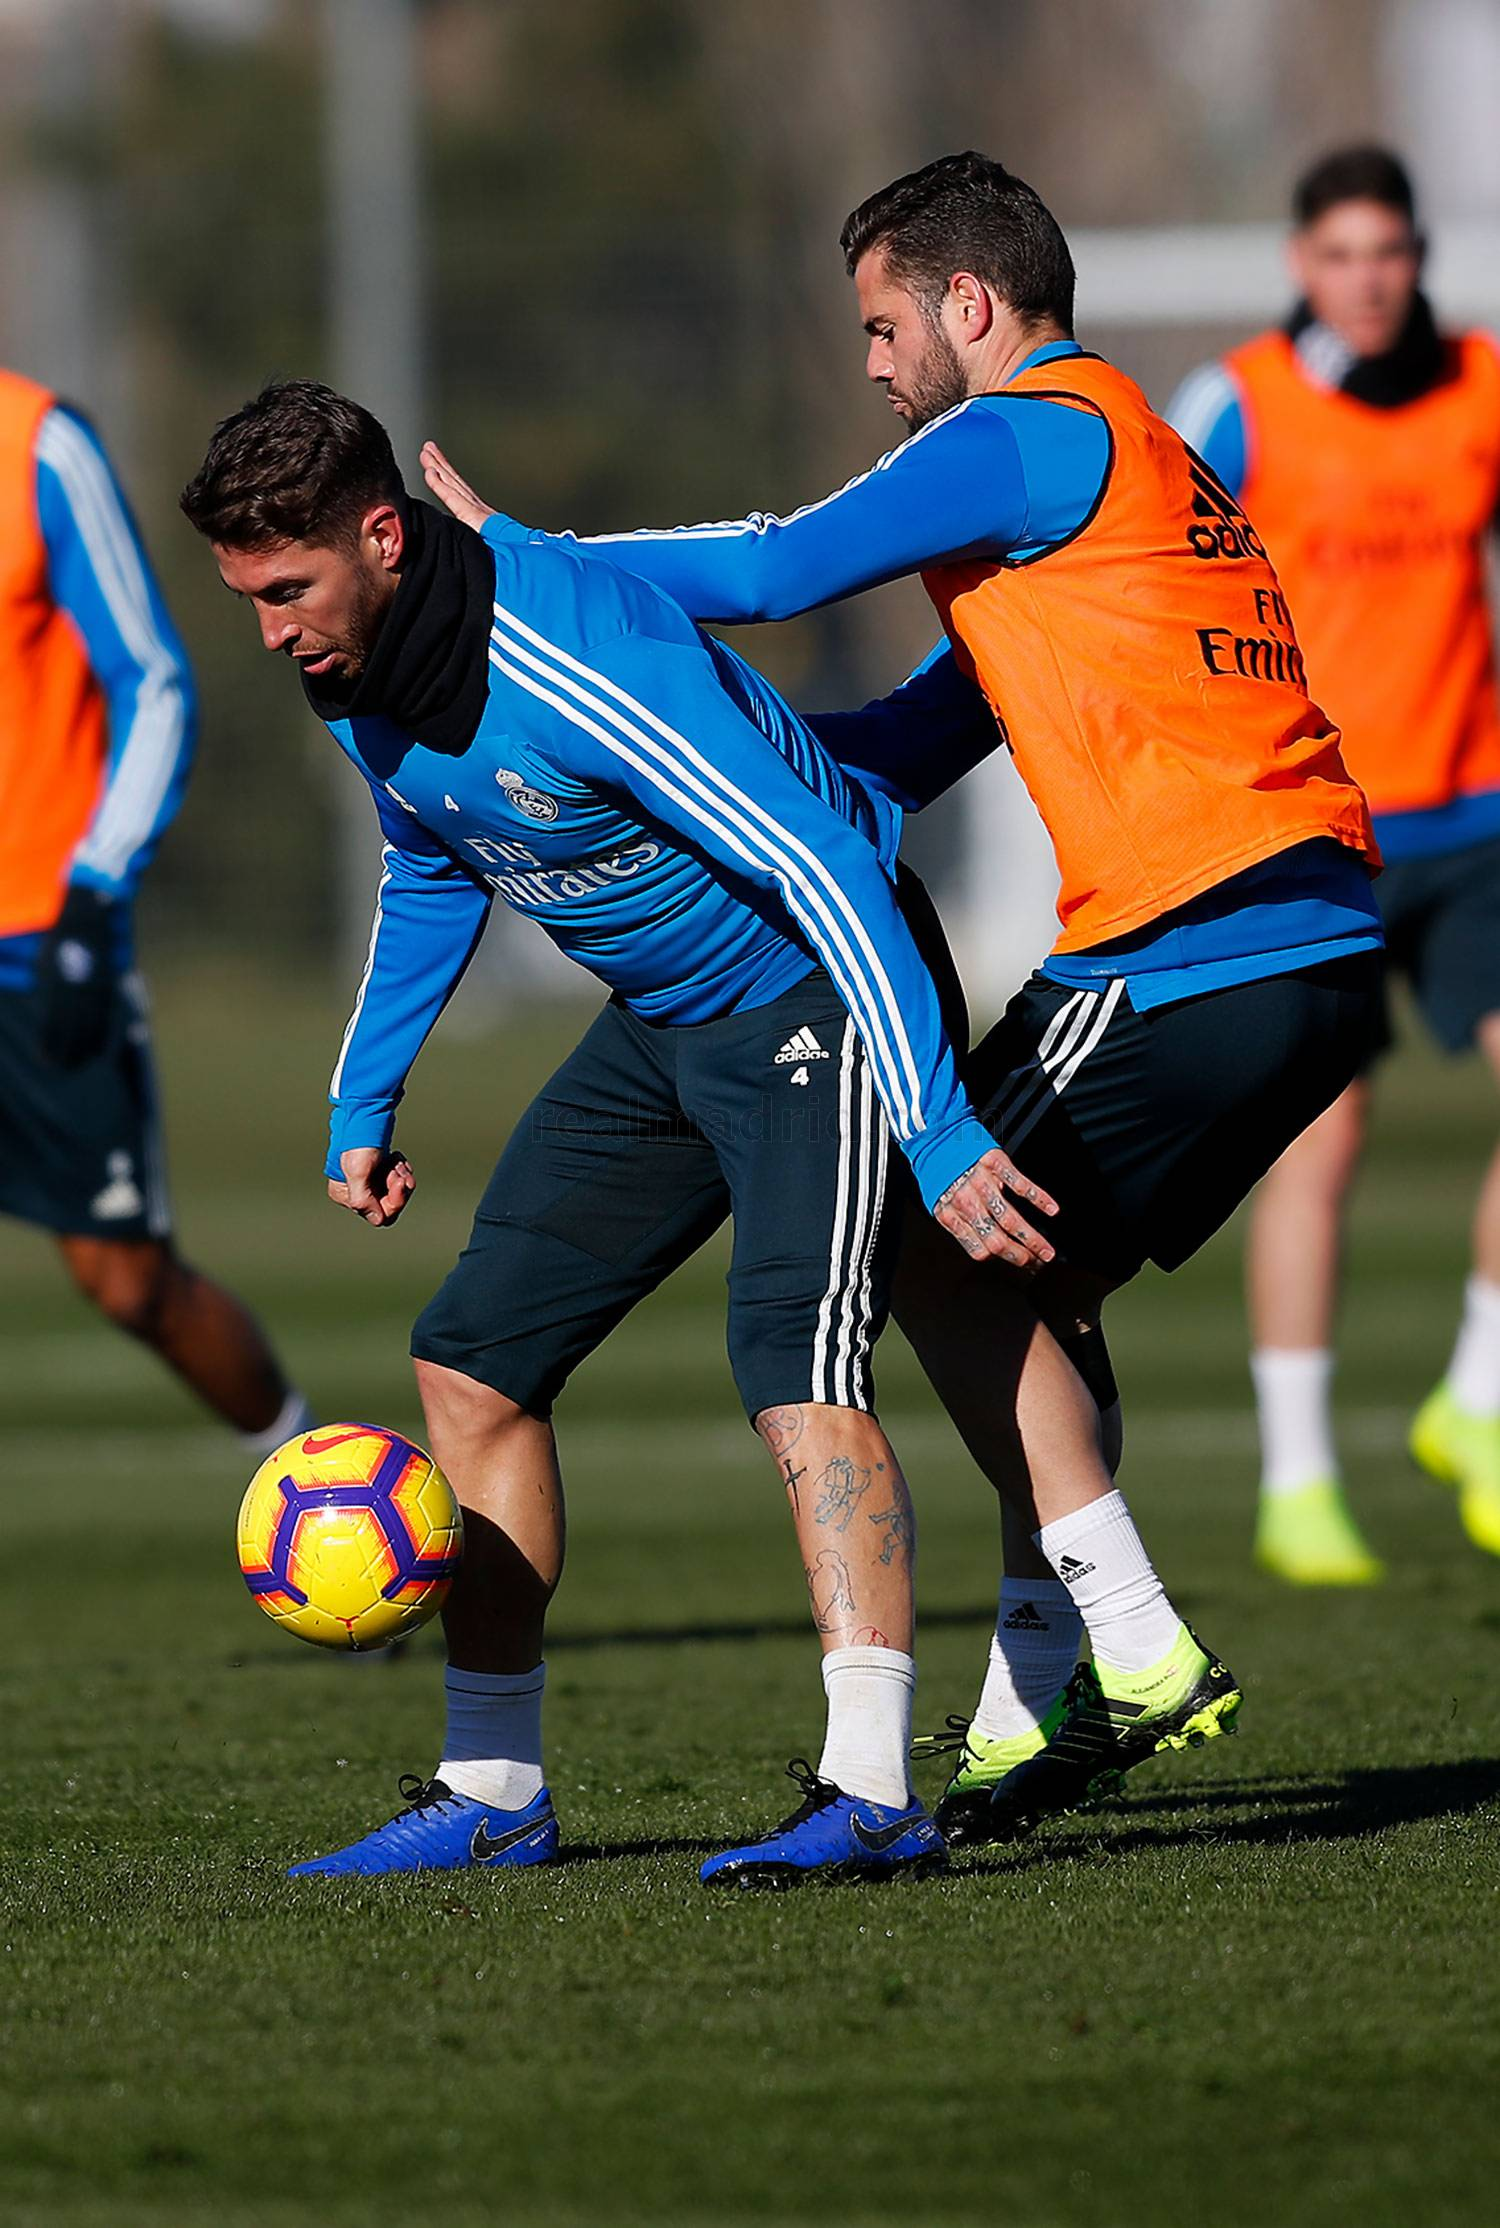 Real Madrid - Entrenamiento del Real Madrid - 12-01-2019